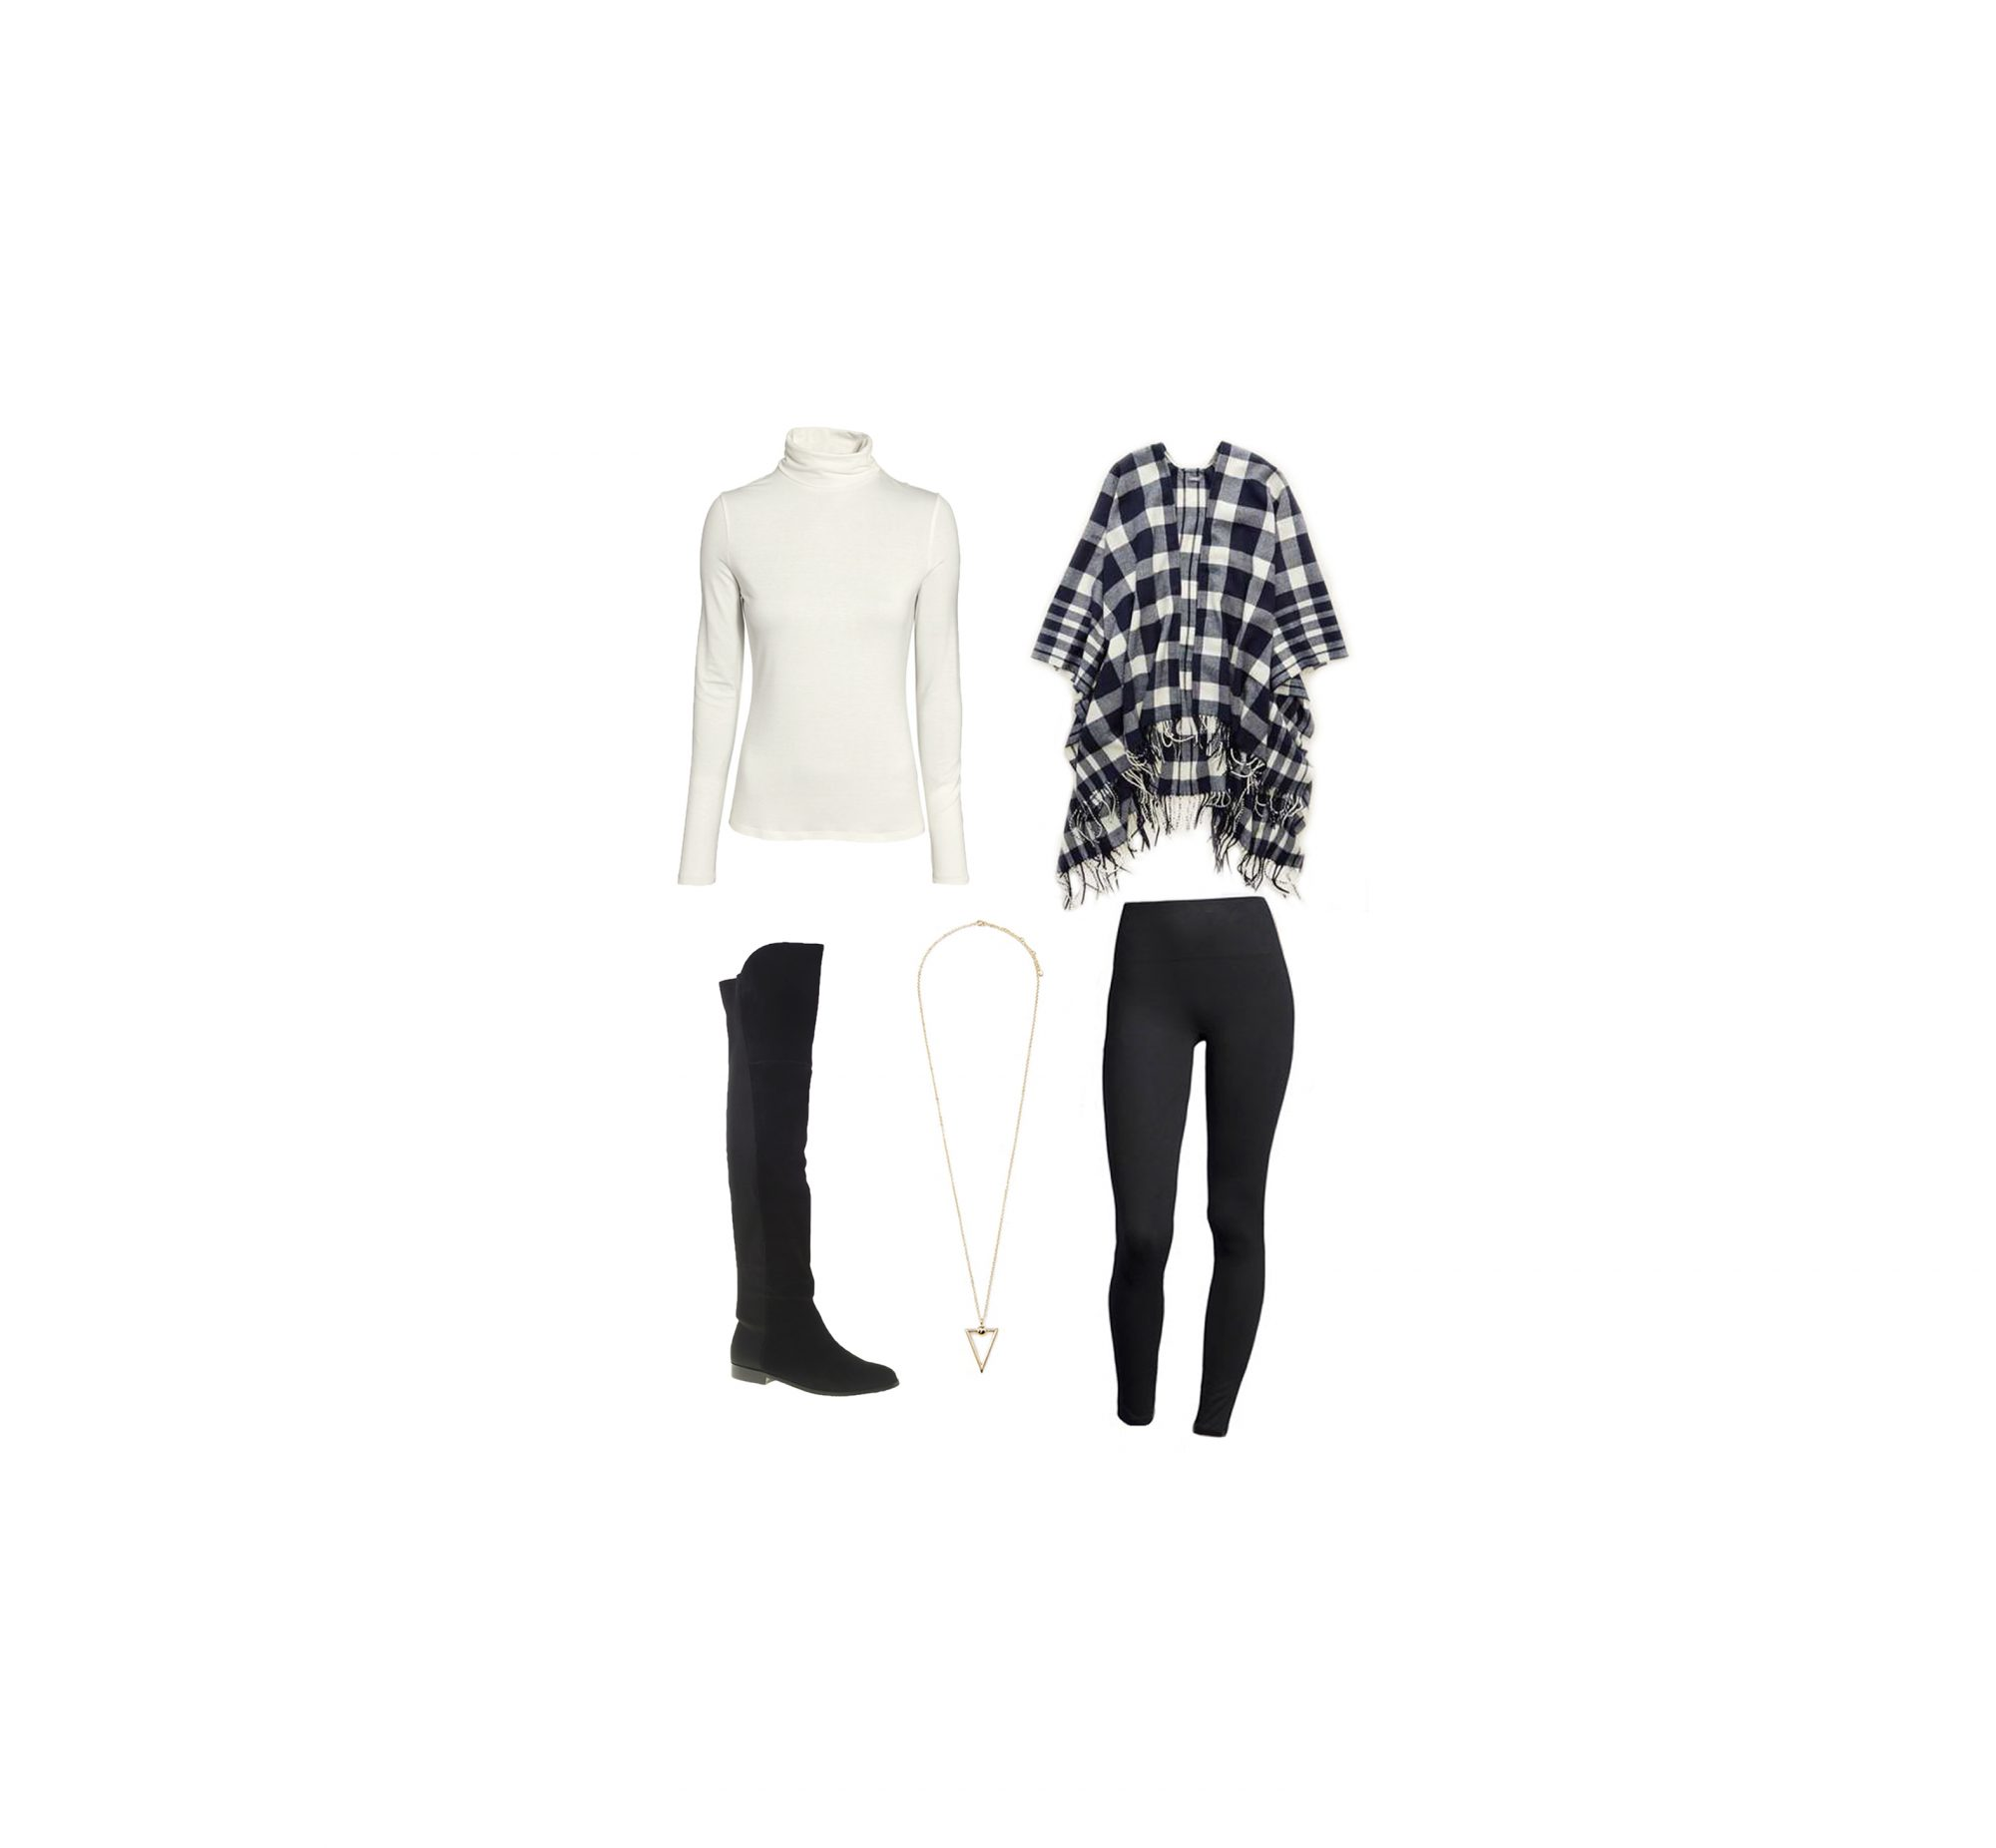 Legging outfit for weekend wear